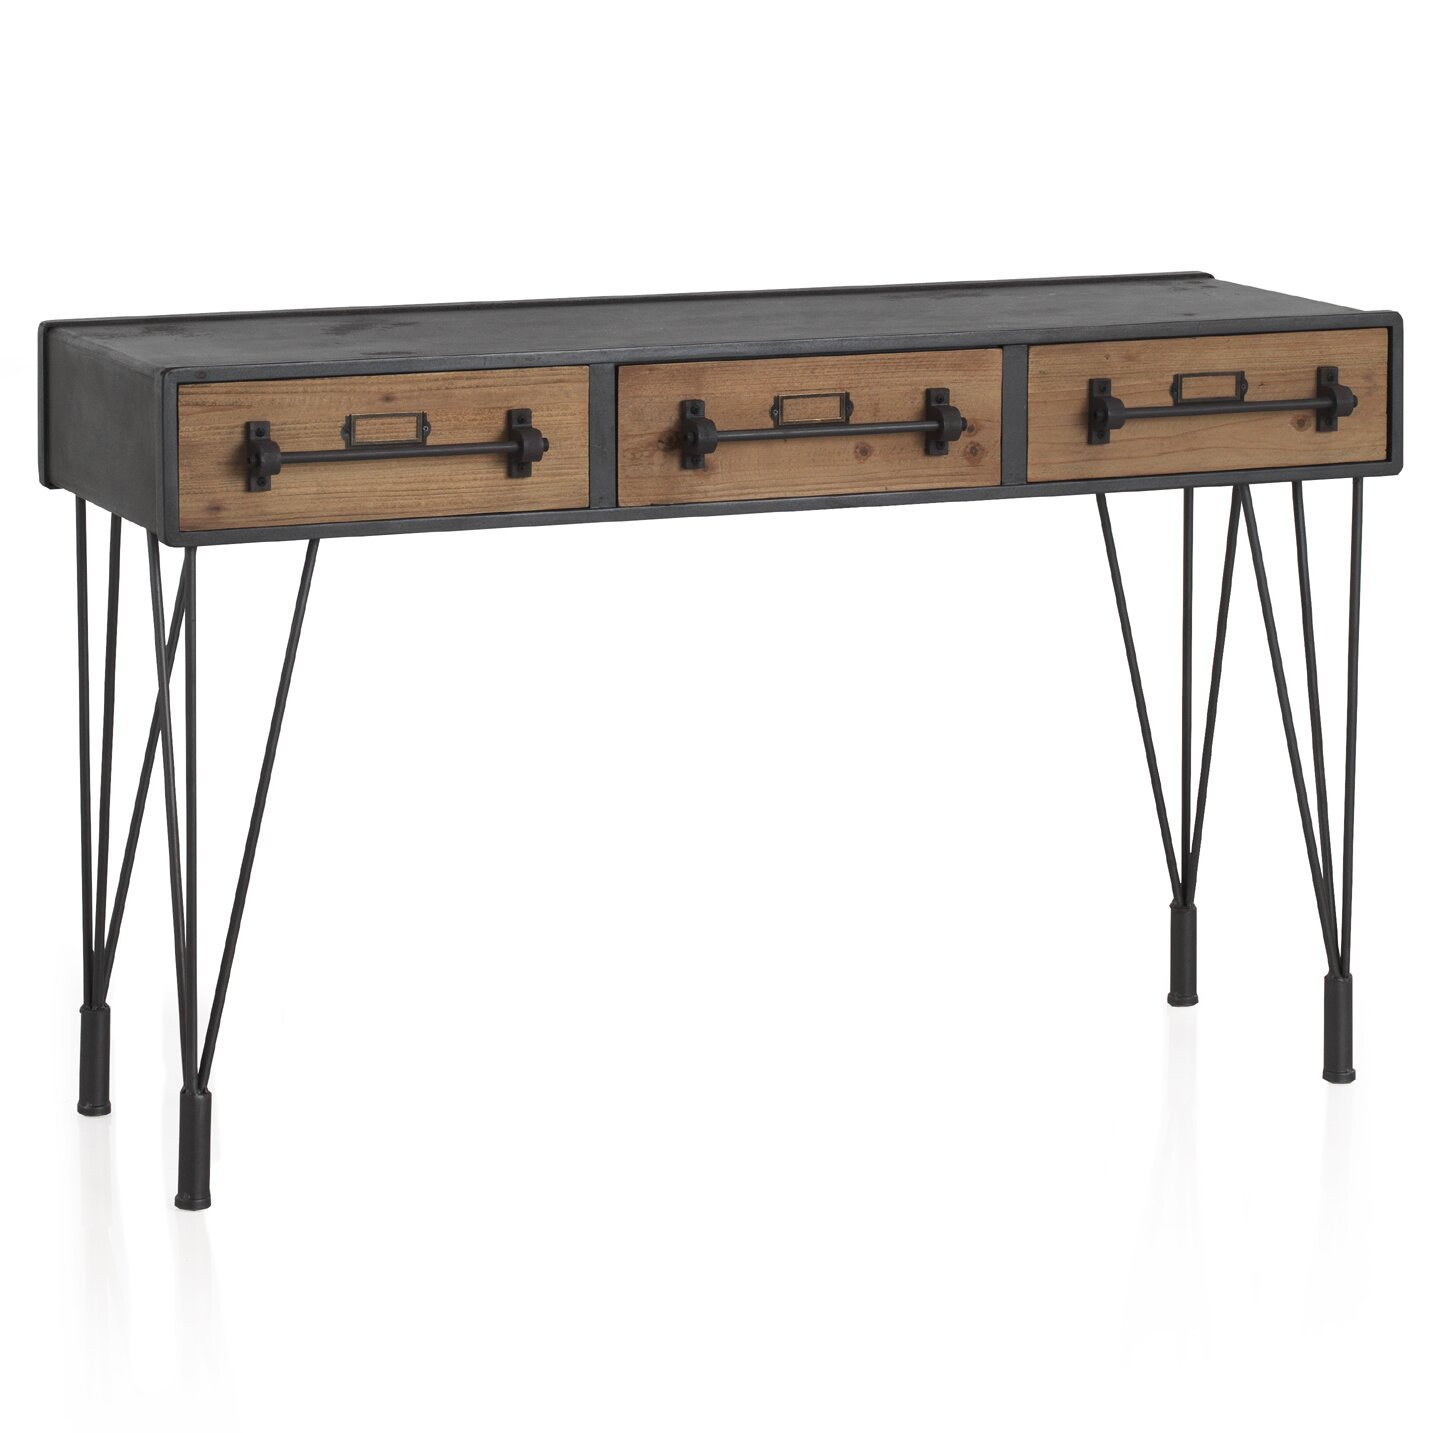 50s retro console table - photo #24